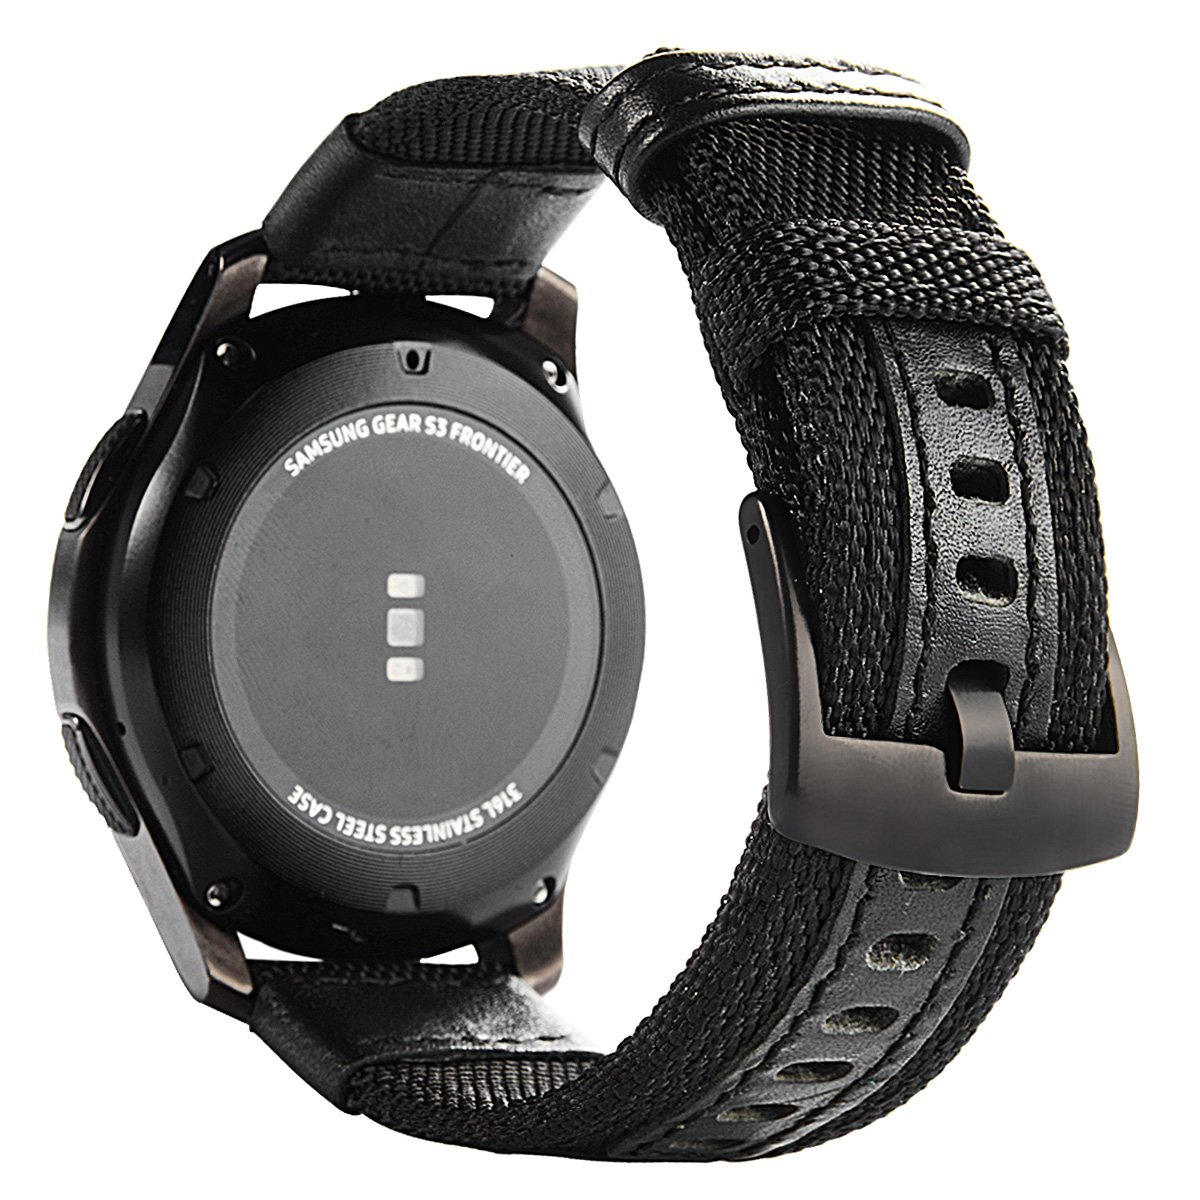 Gear S3 Bands Nylon, Maxjoy S3 Frontier Classic Band 22 mm Woven Nylon Replacement Strap Large Sport Wristband Bracelet with Stainless Steel Metal Clasp Buckle for Samsung Gear S3 Smart Watch, Black